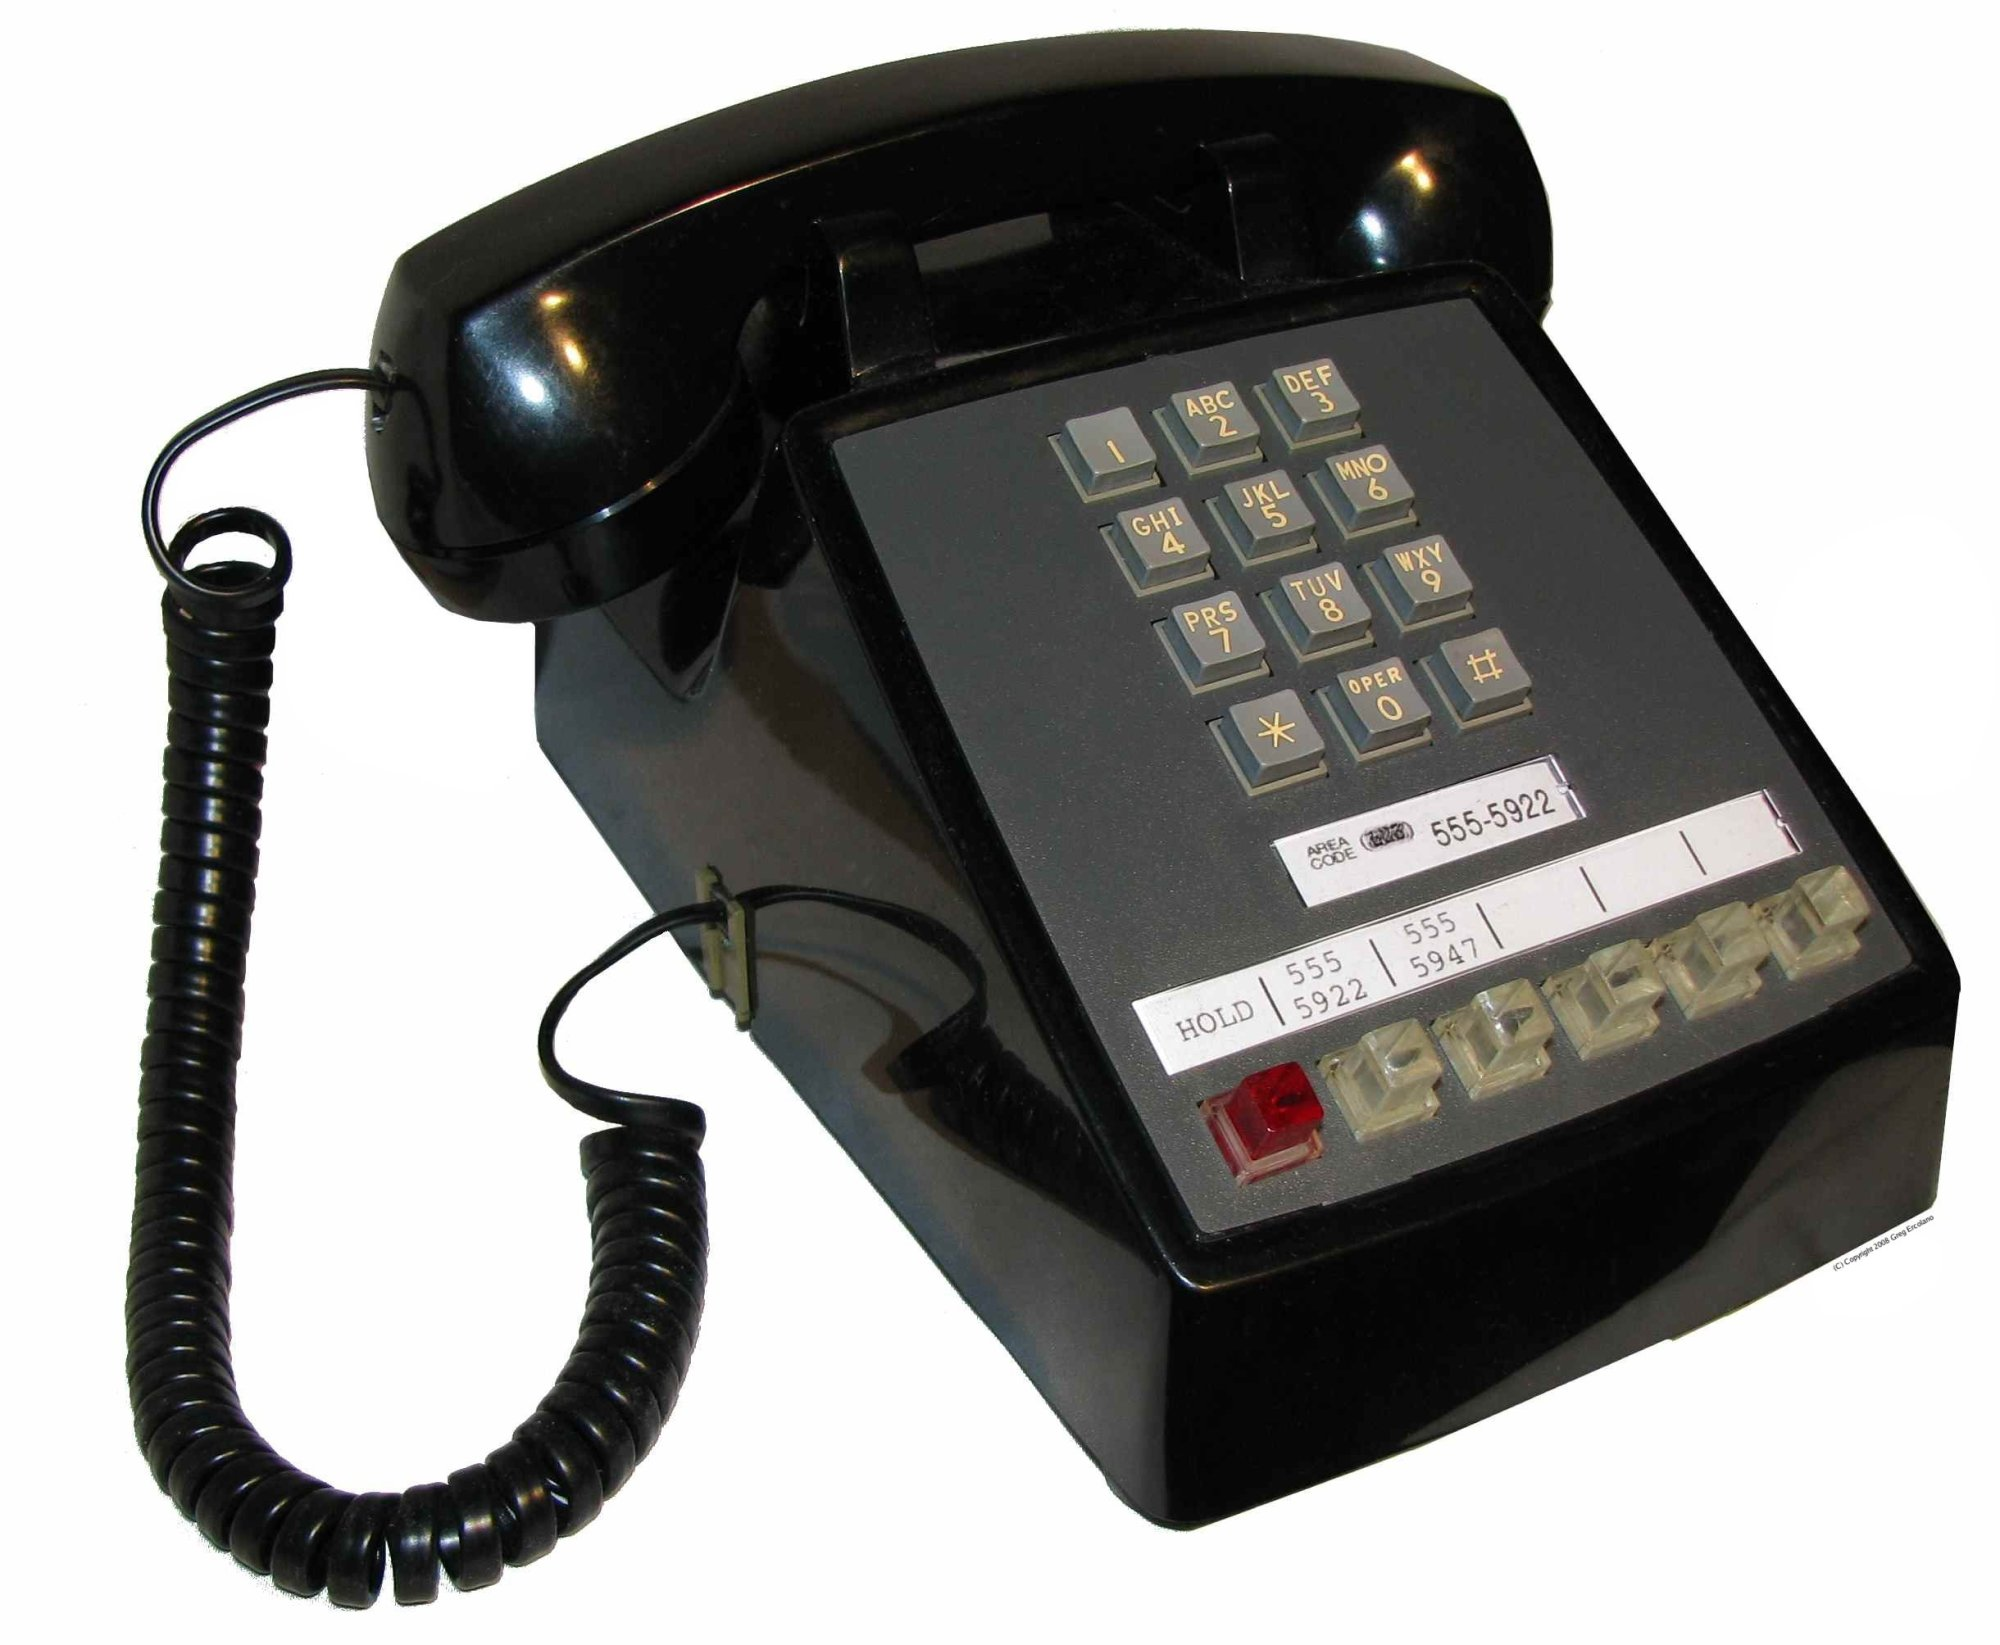 hight resolution of 1a2 key phone systems